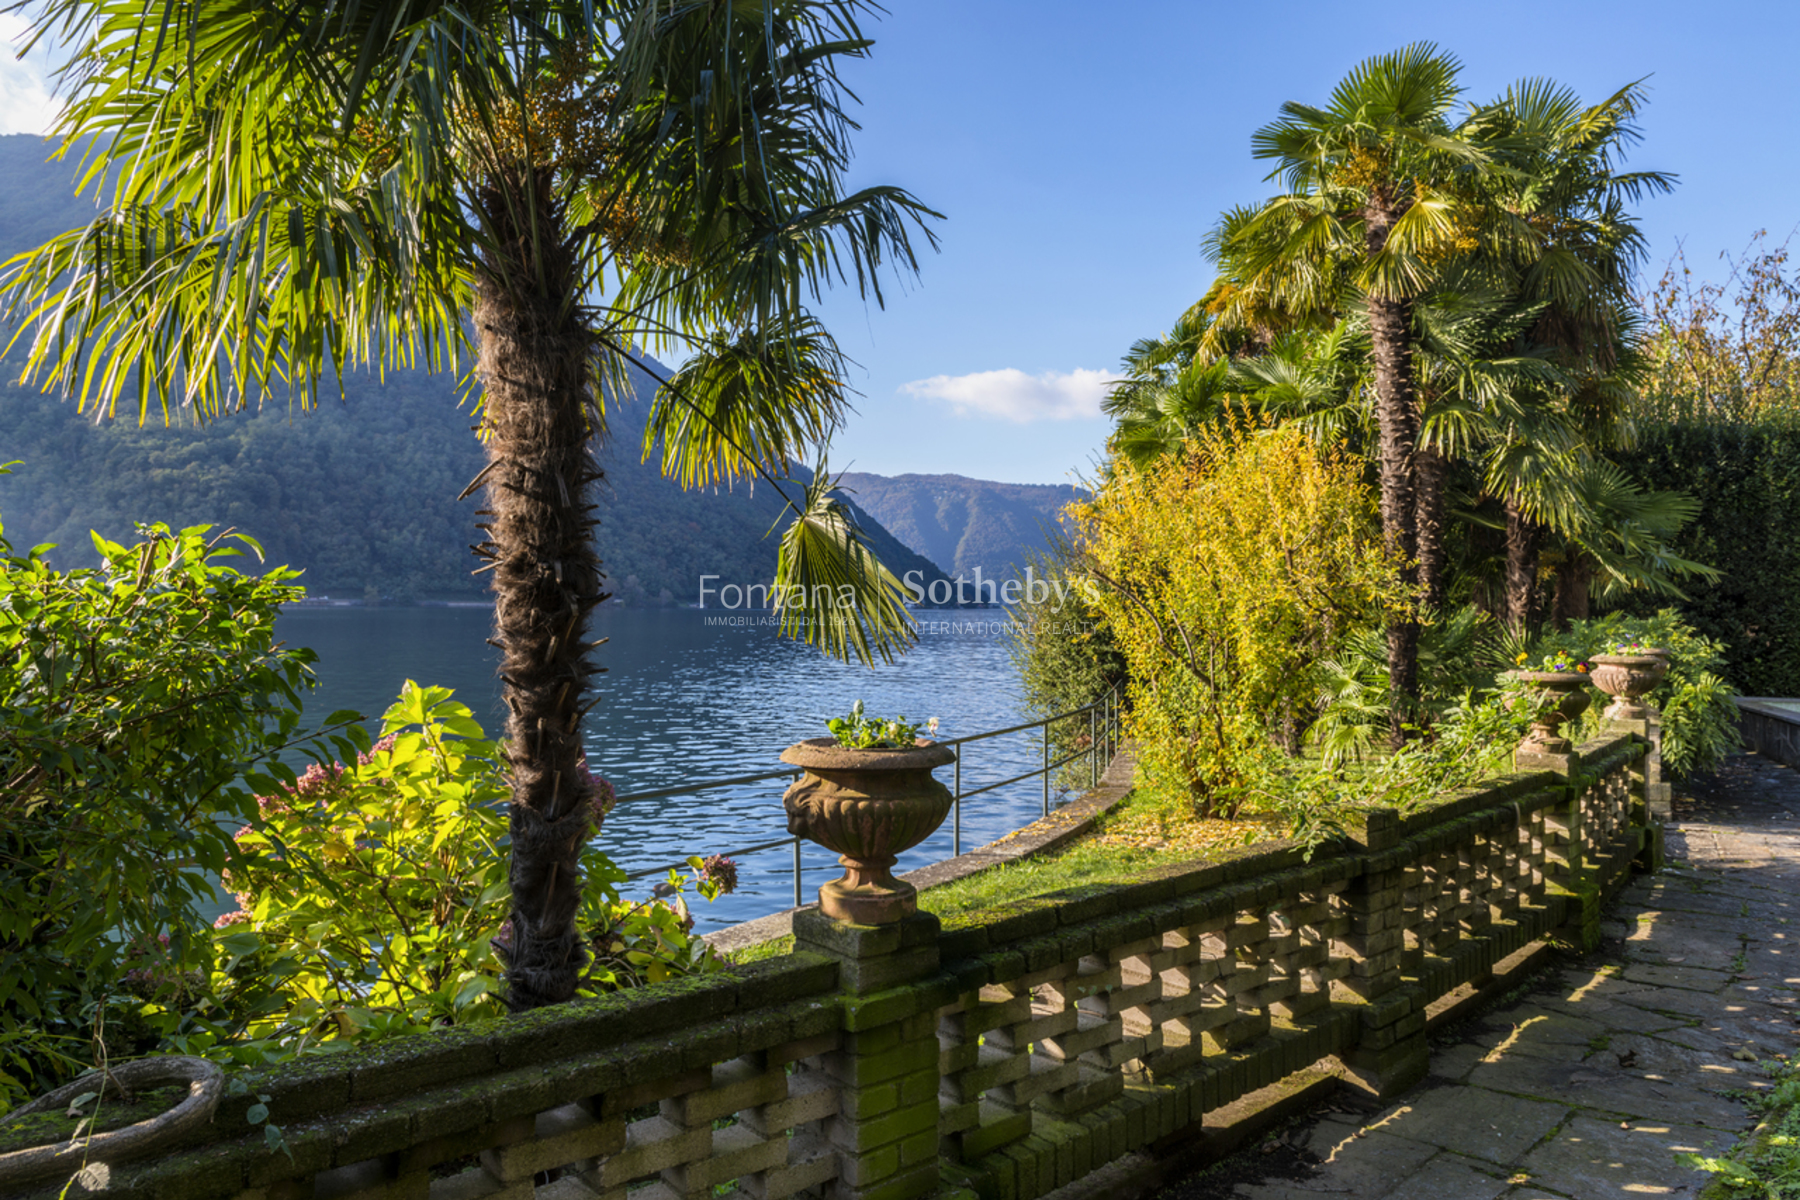 Single Family Home for Sale at Property on the lake with boathouse Melano Other Switzerland, Other Areas In Switzerland 6818 Switzerland